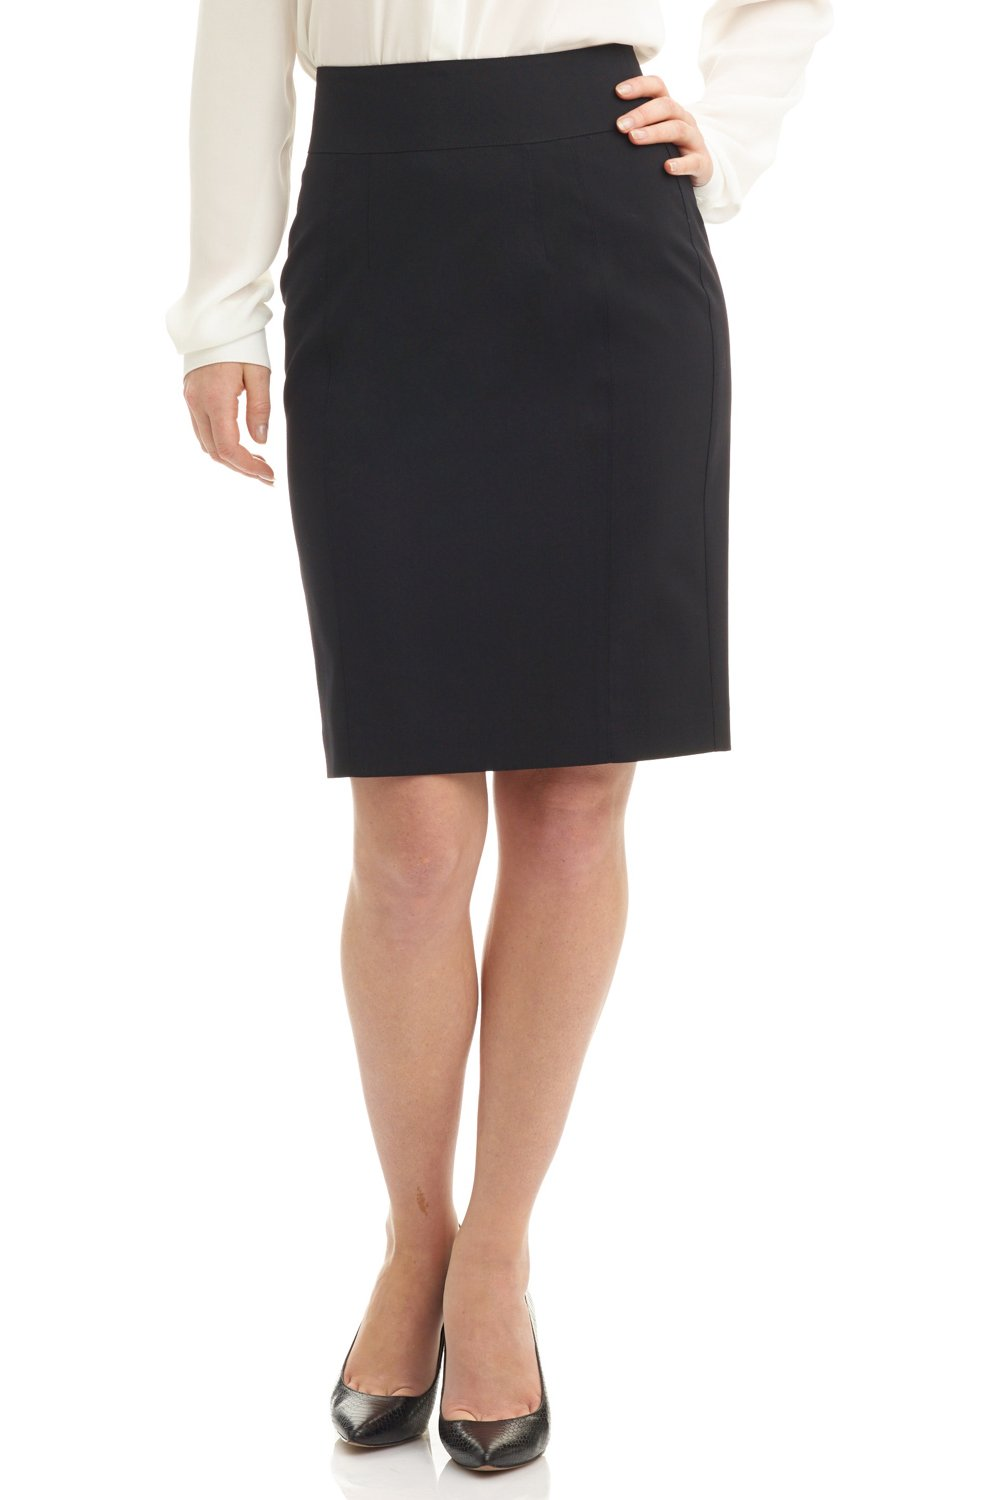 Rekucci Collection Women's Stretch Wool Pencil Skirt with Back Zip Detail (8,Black)